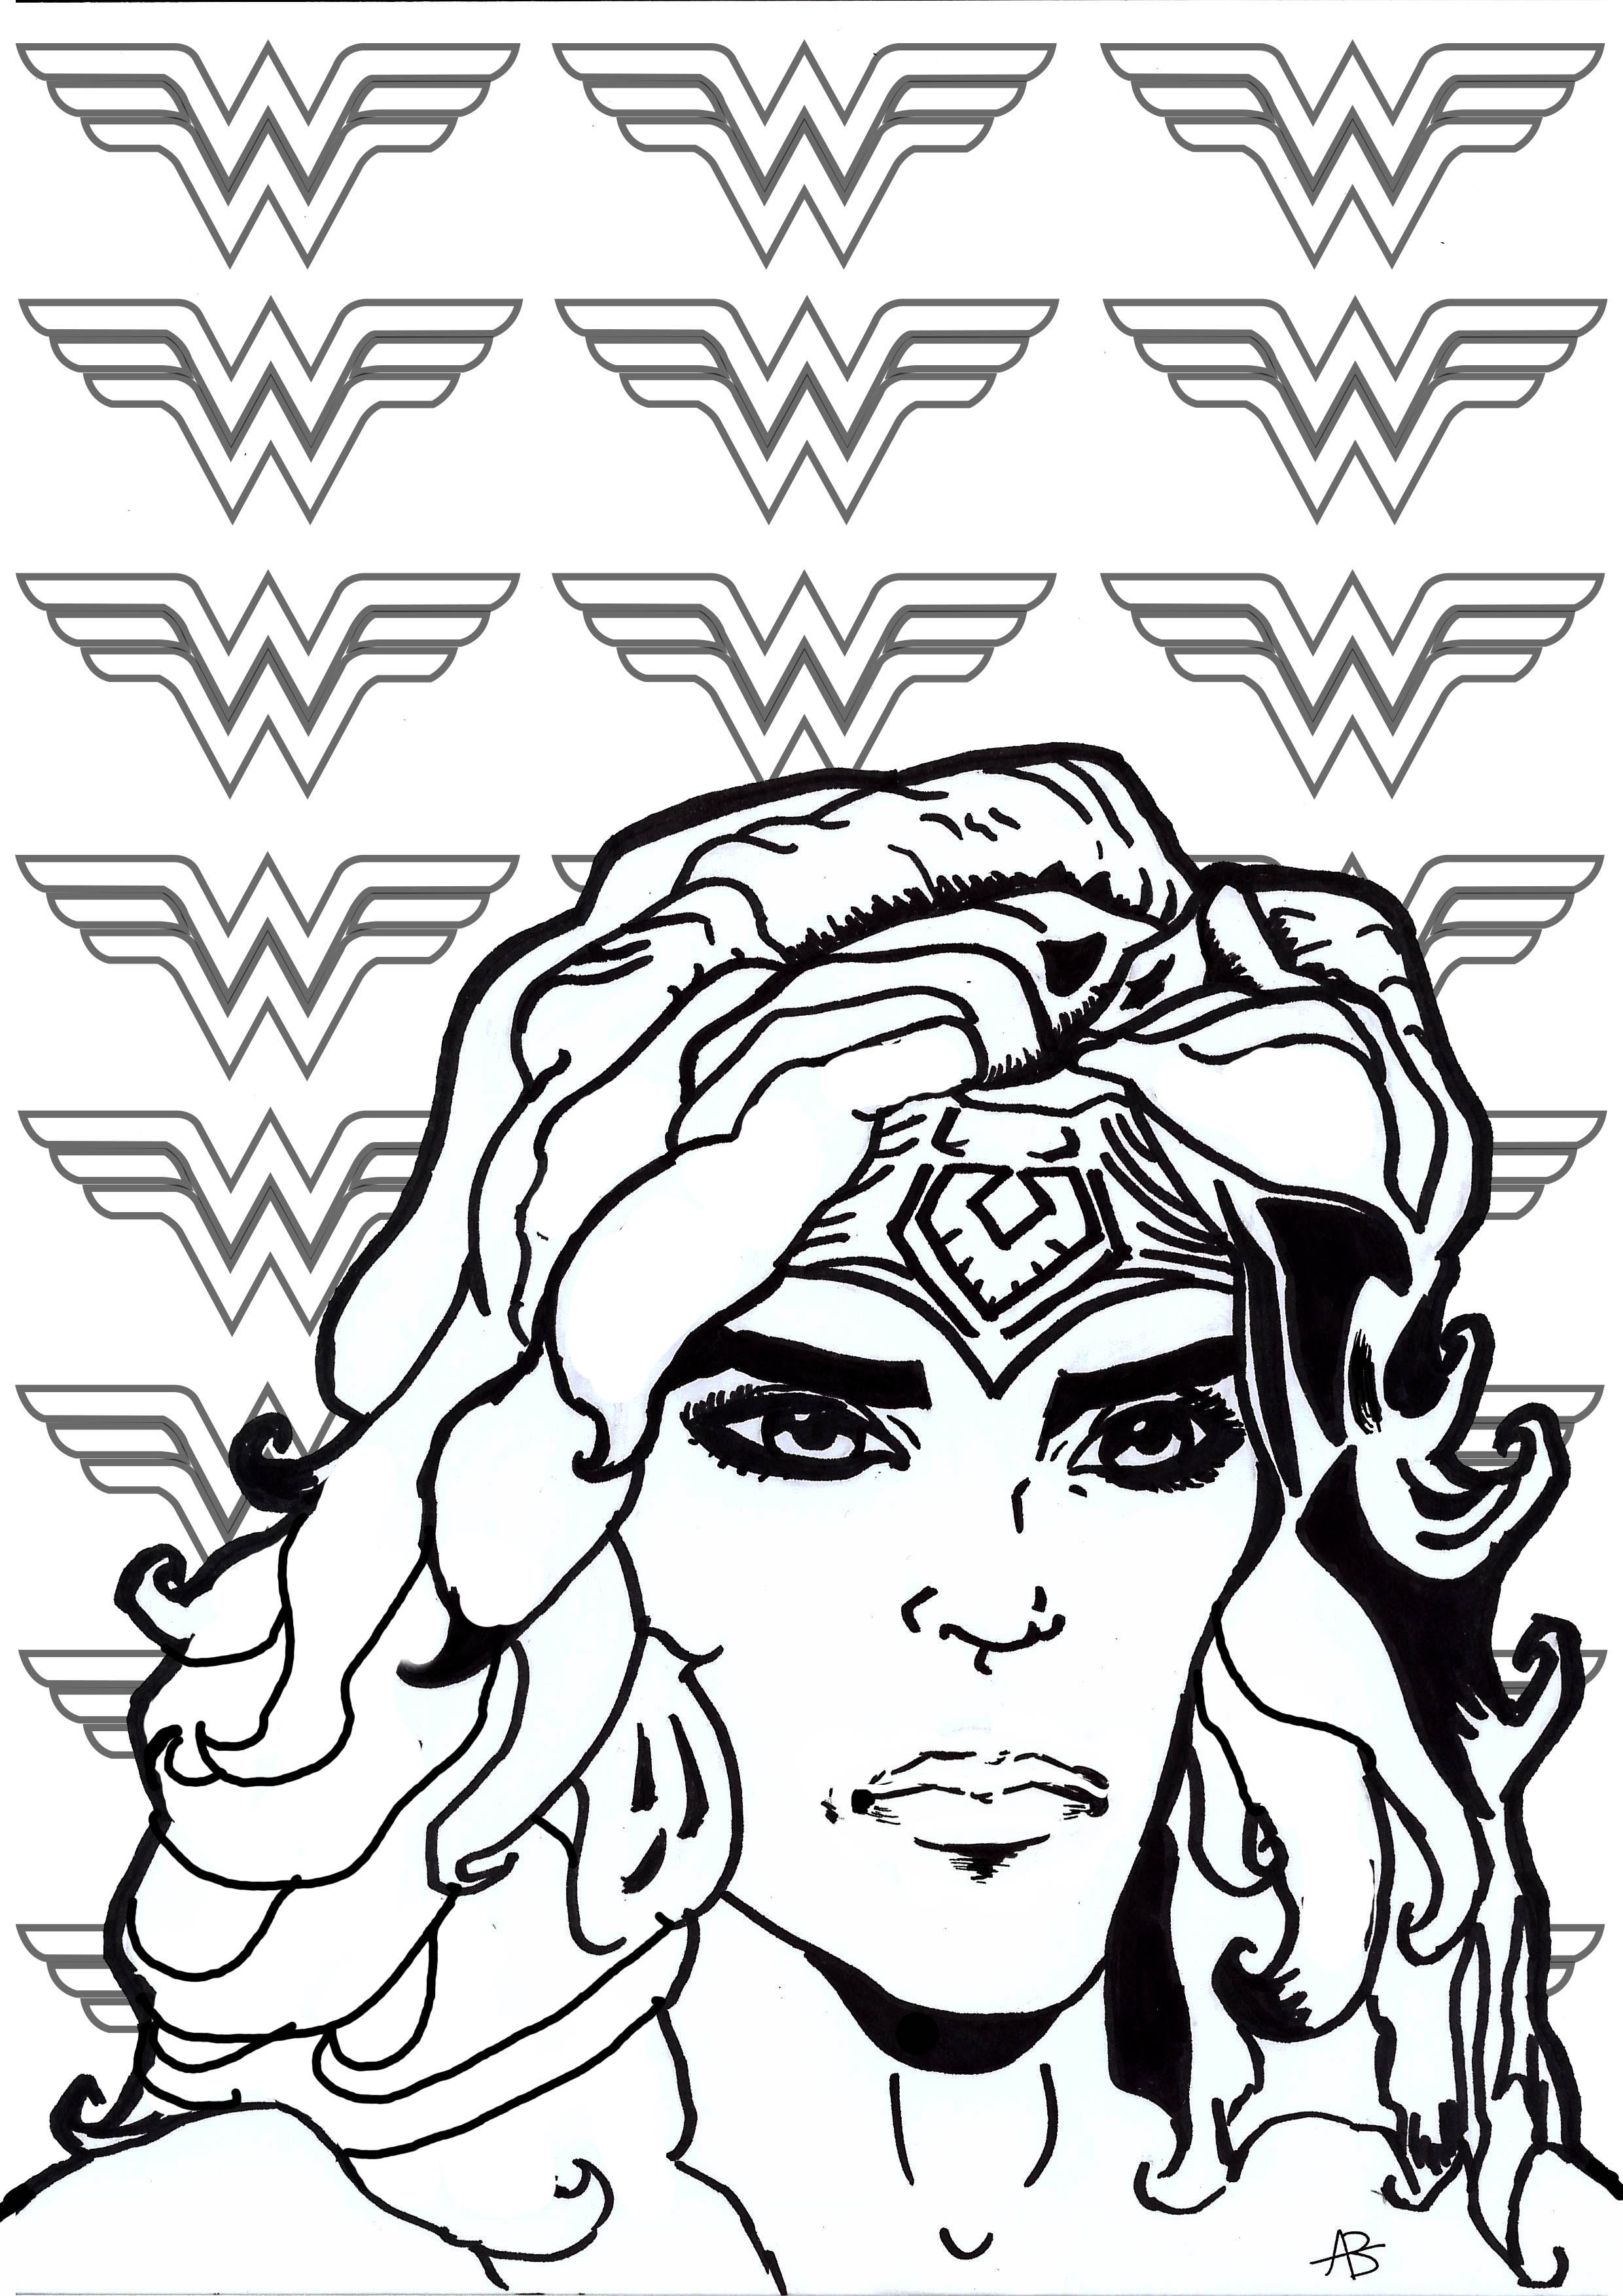 Coloring page inspired by Wonder Woman (DC Comics character)